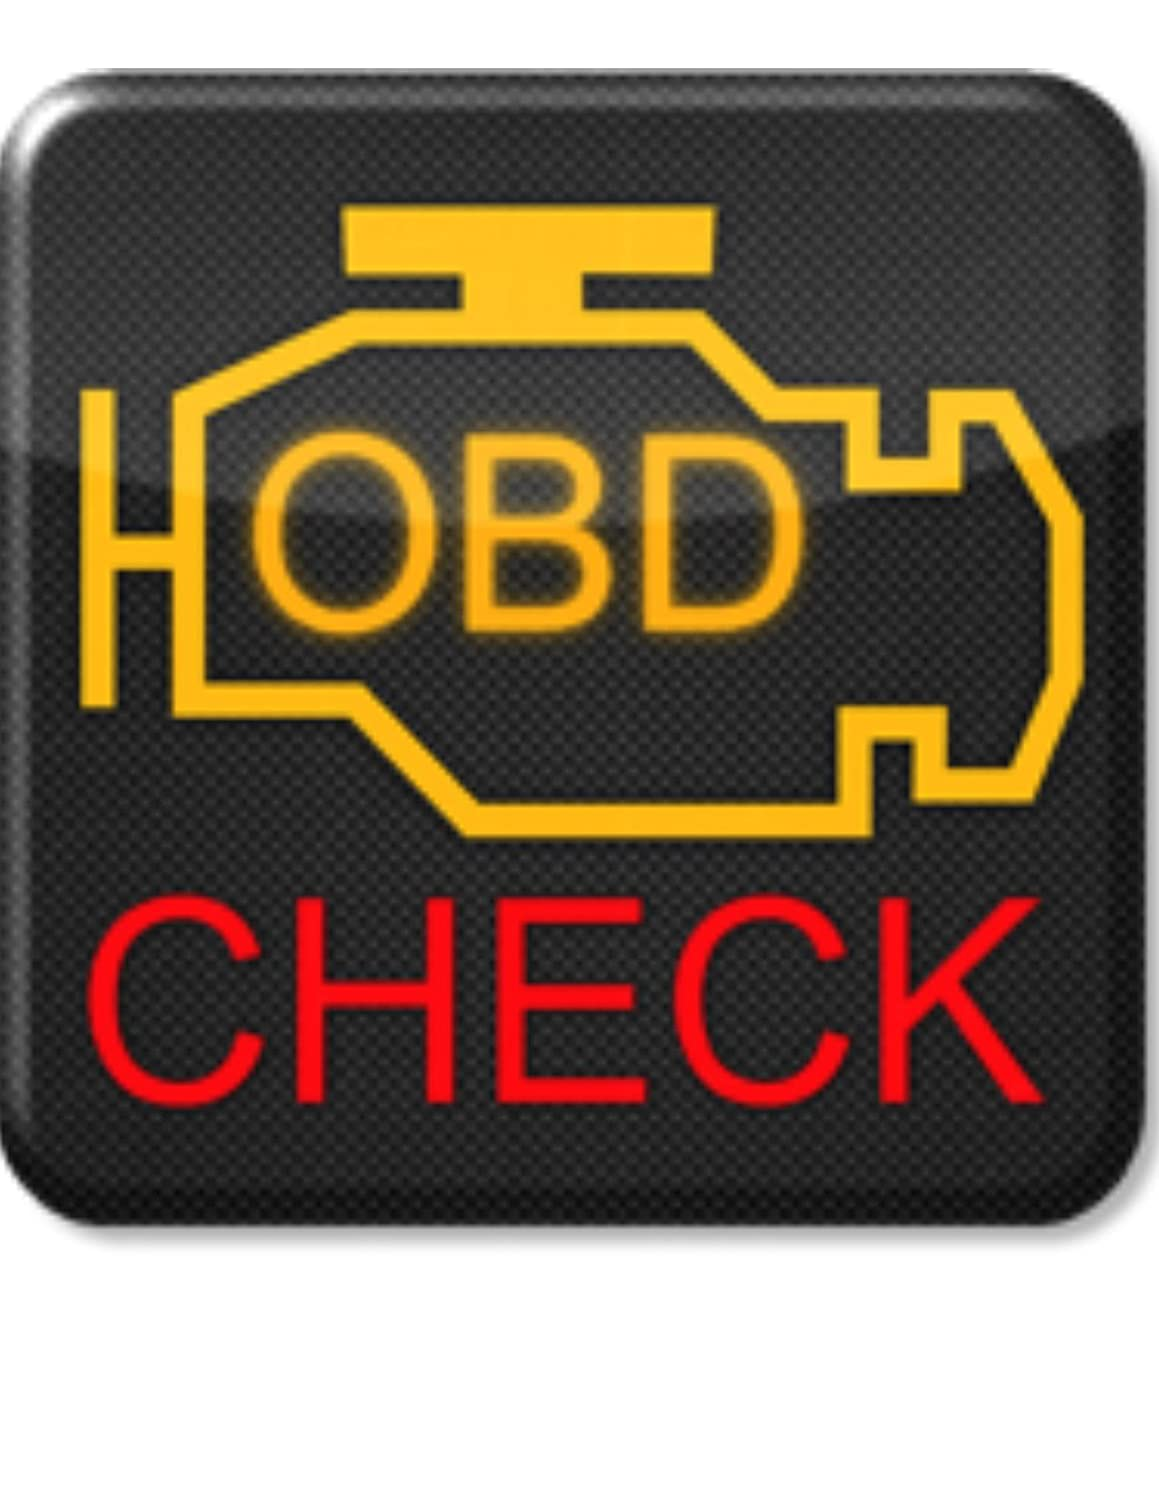 Apsg Engine Light Fault Code Reader Scanner Obd11 2 Bmw Chart Read Scan Clear Includes Direction Booklet With Automotive